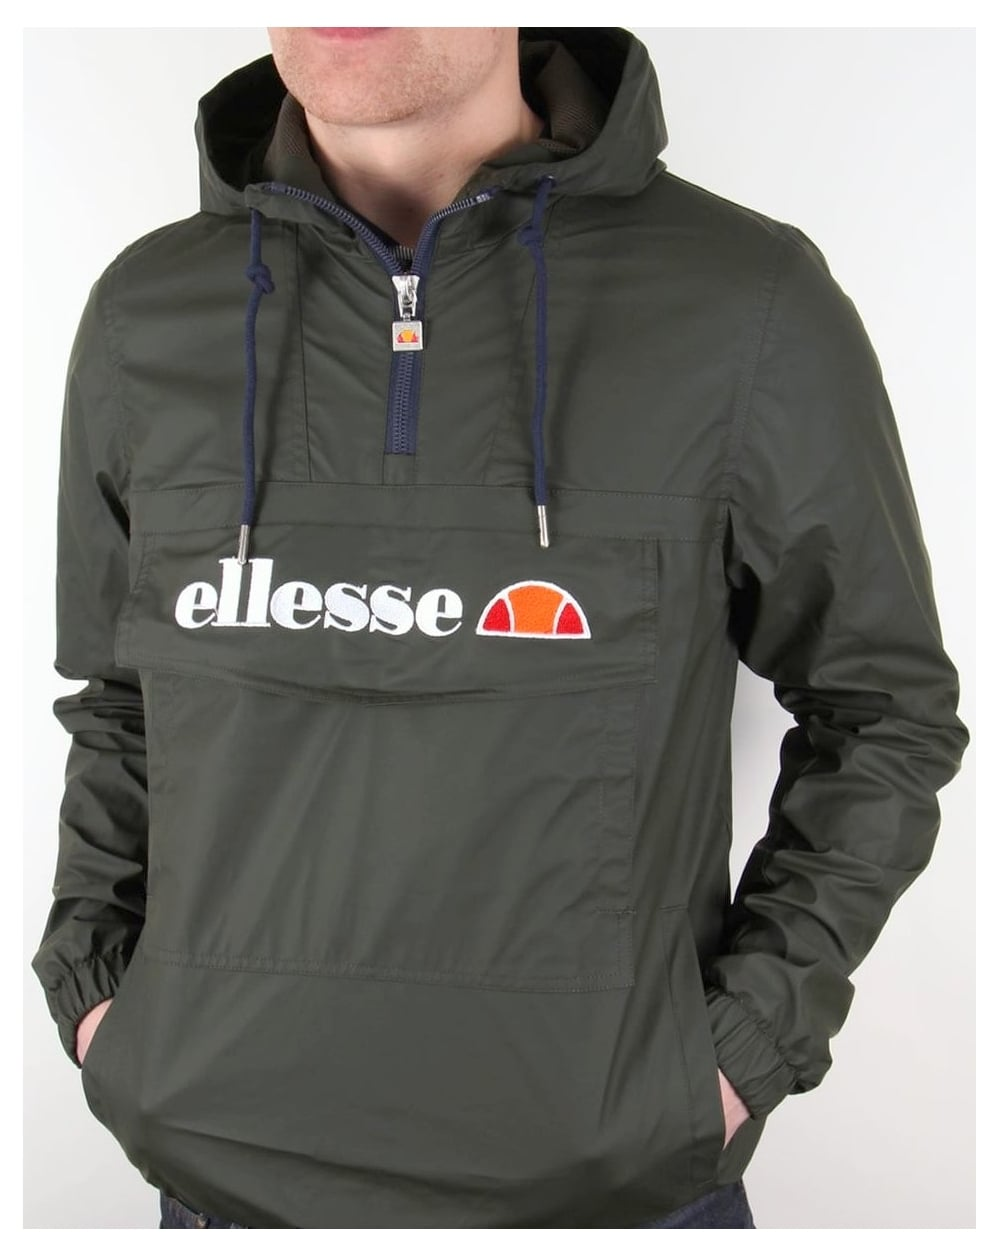 ellesse mont brava quarter zip jacket rosin green smock. Black Bedroom Furniture Sets. Home Design Ideas